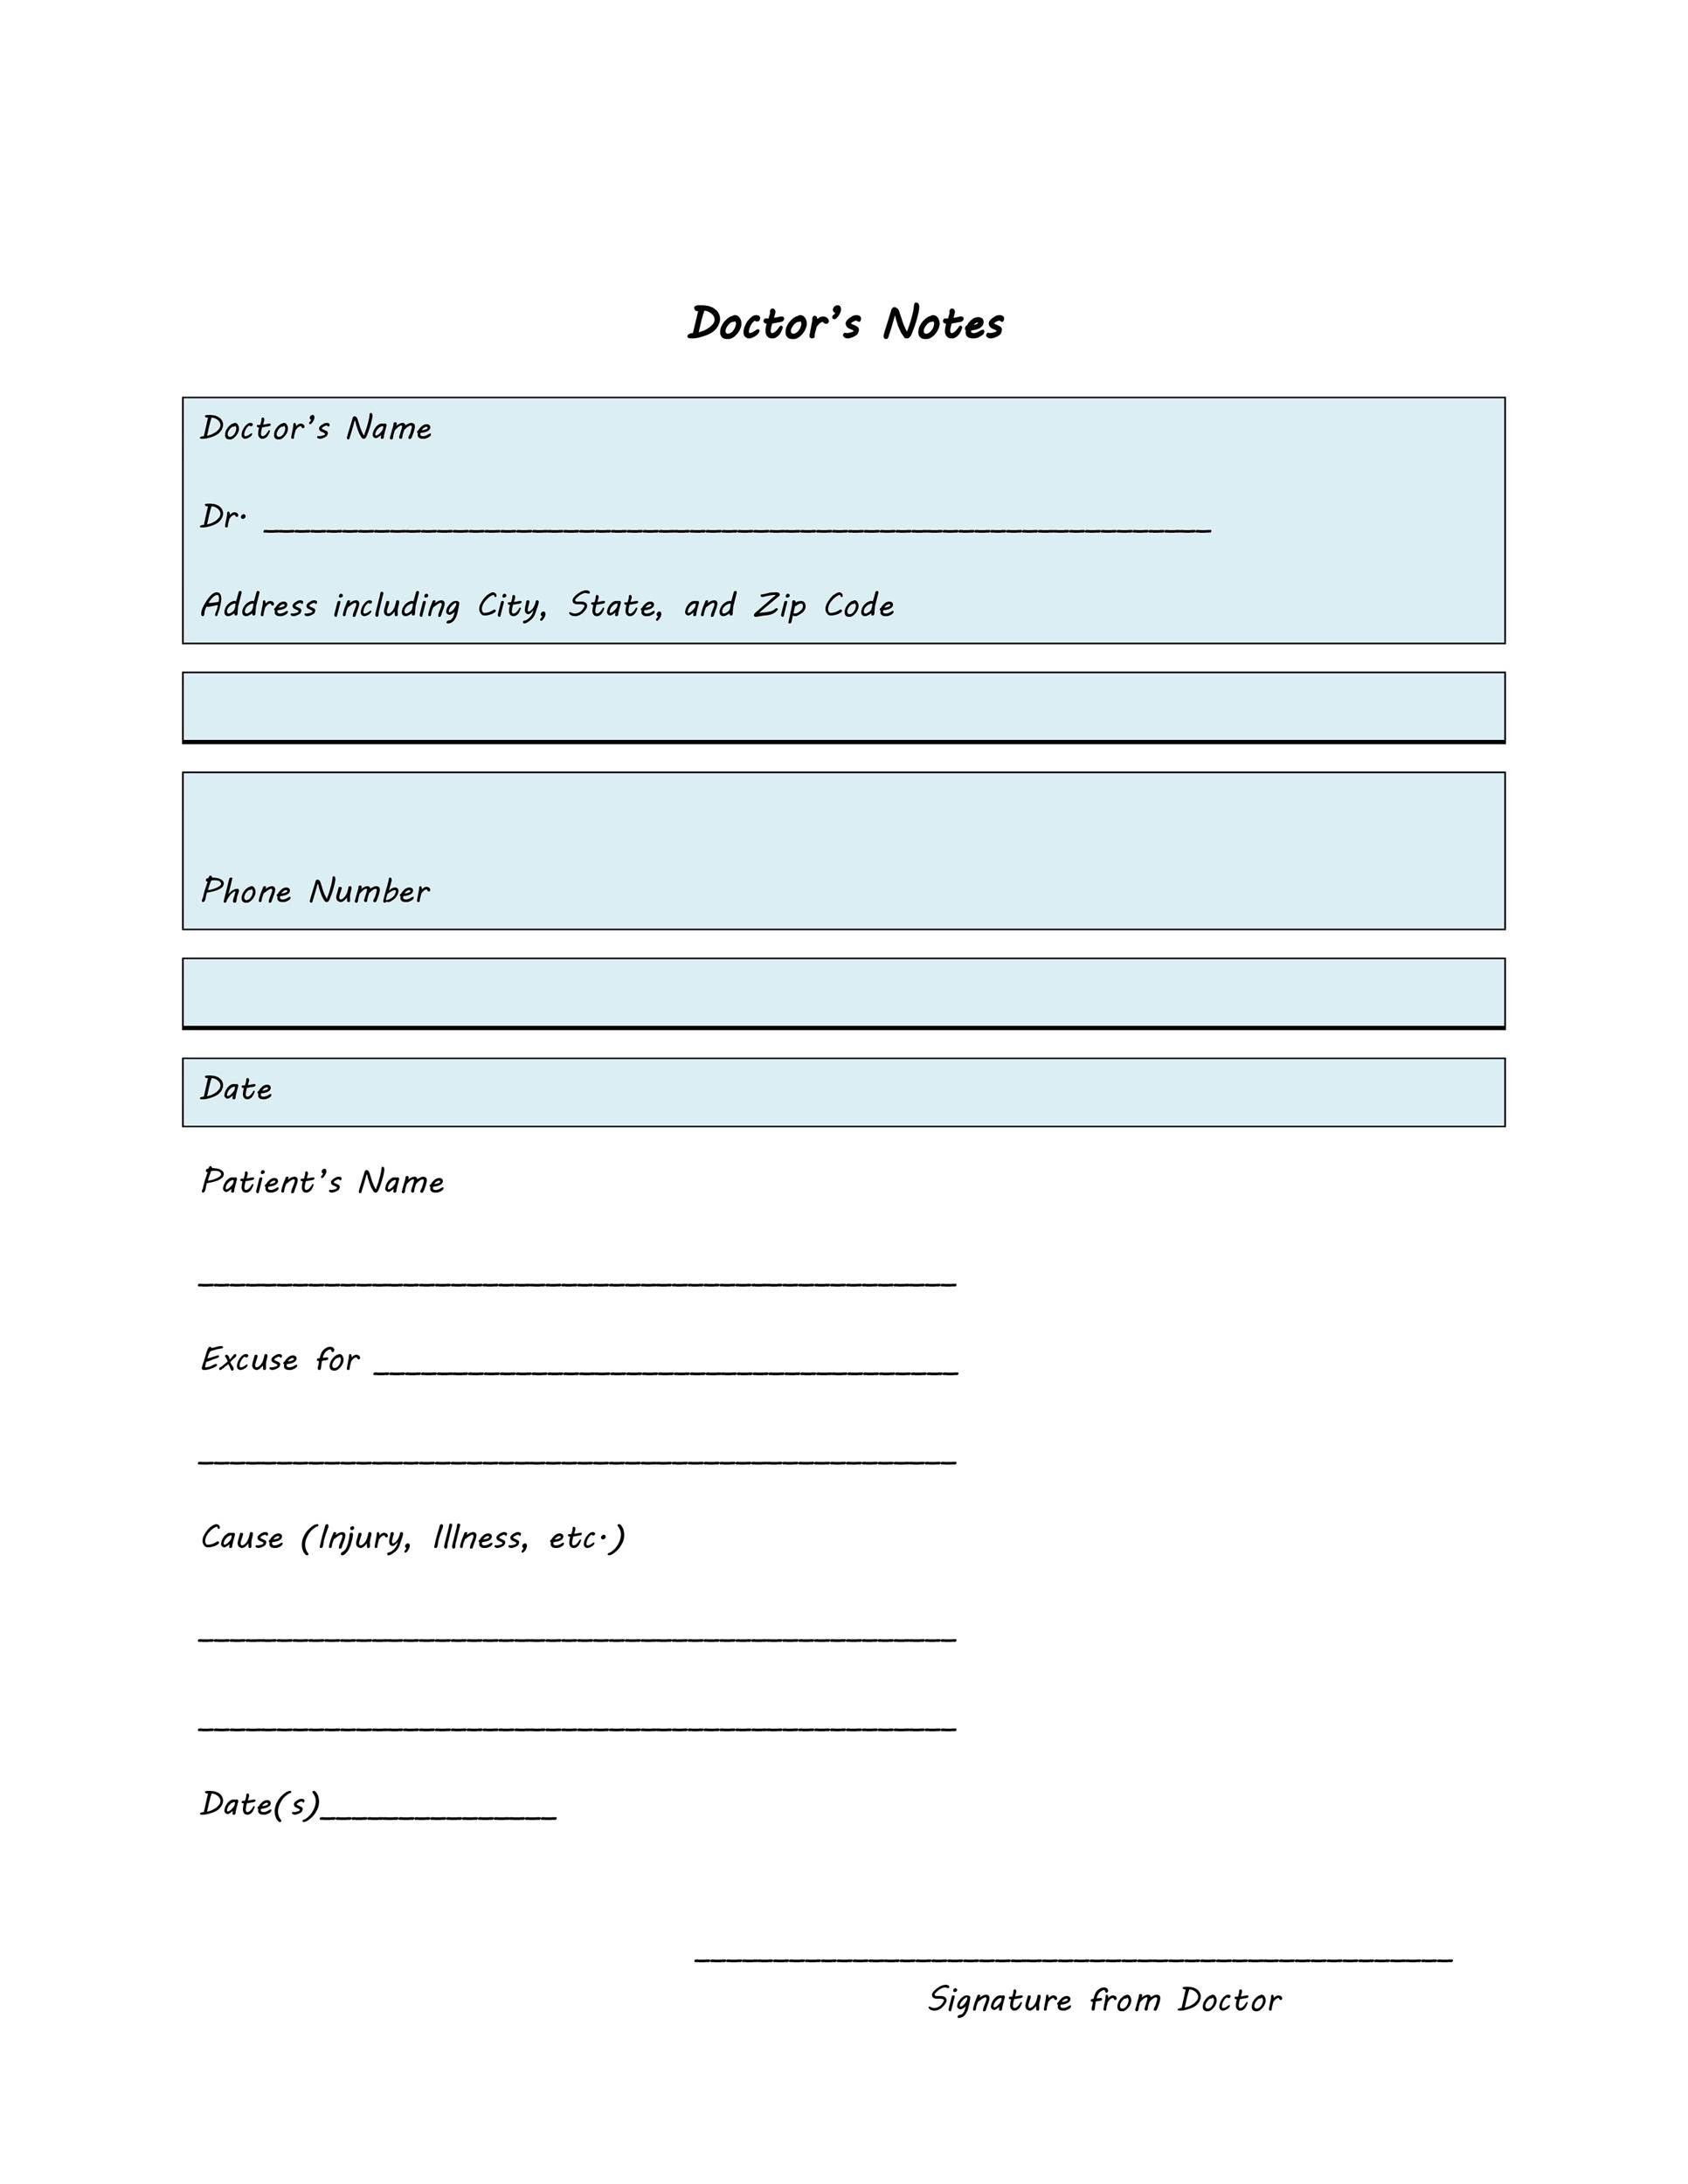 free bonus doctor notes template 01 printable